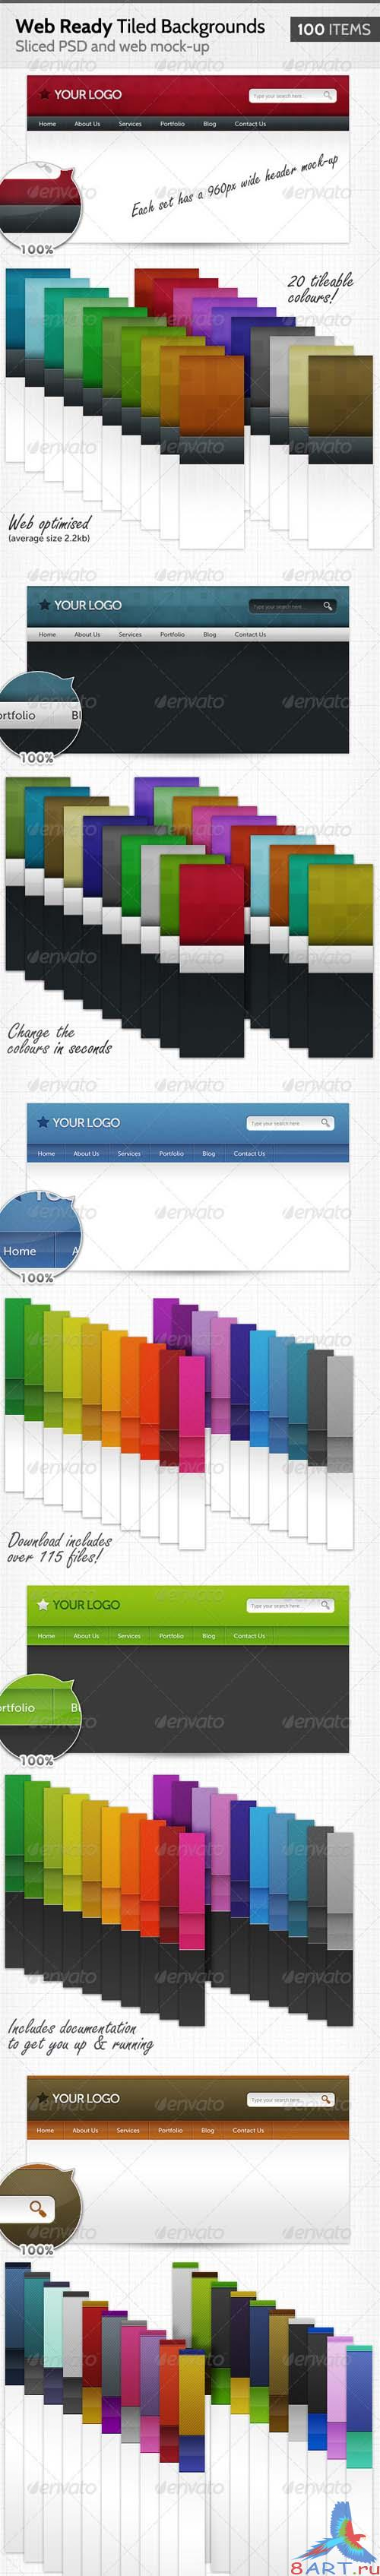 GraphicRiver 100 Web Ready Tiled Backgrounds